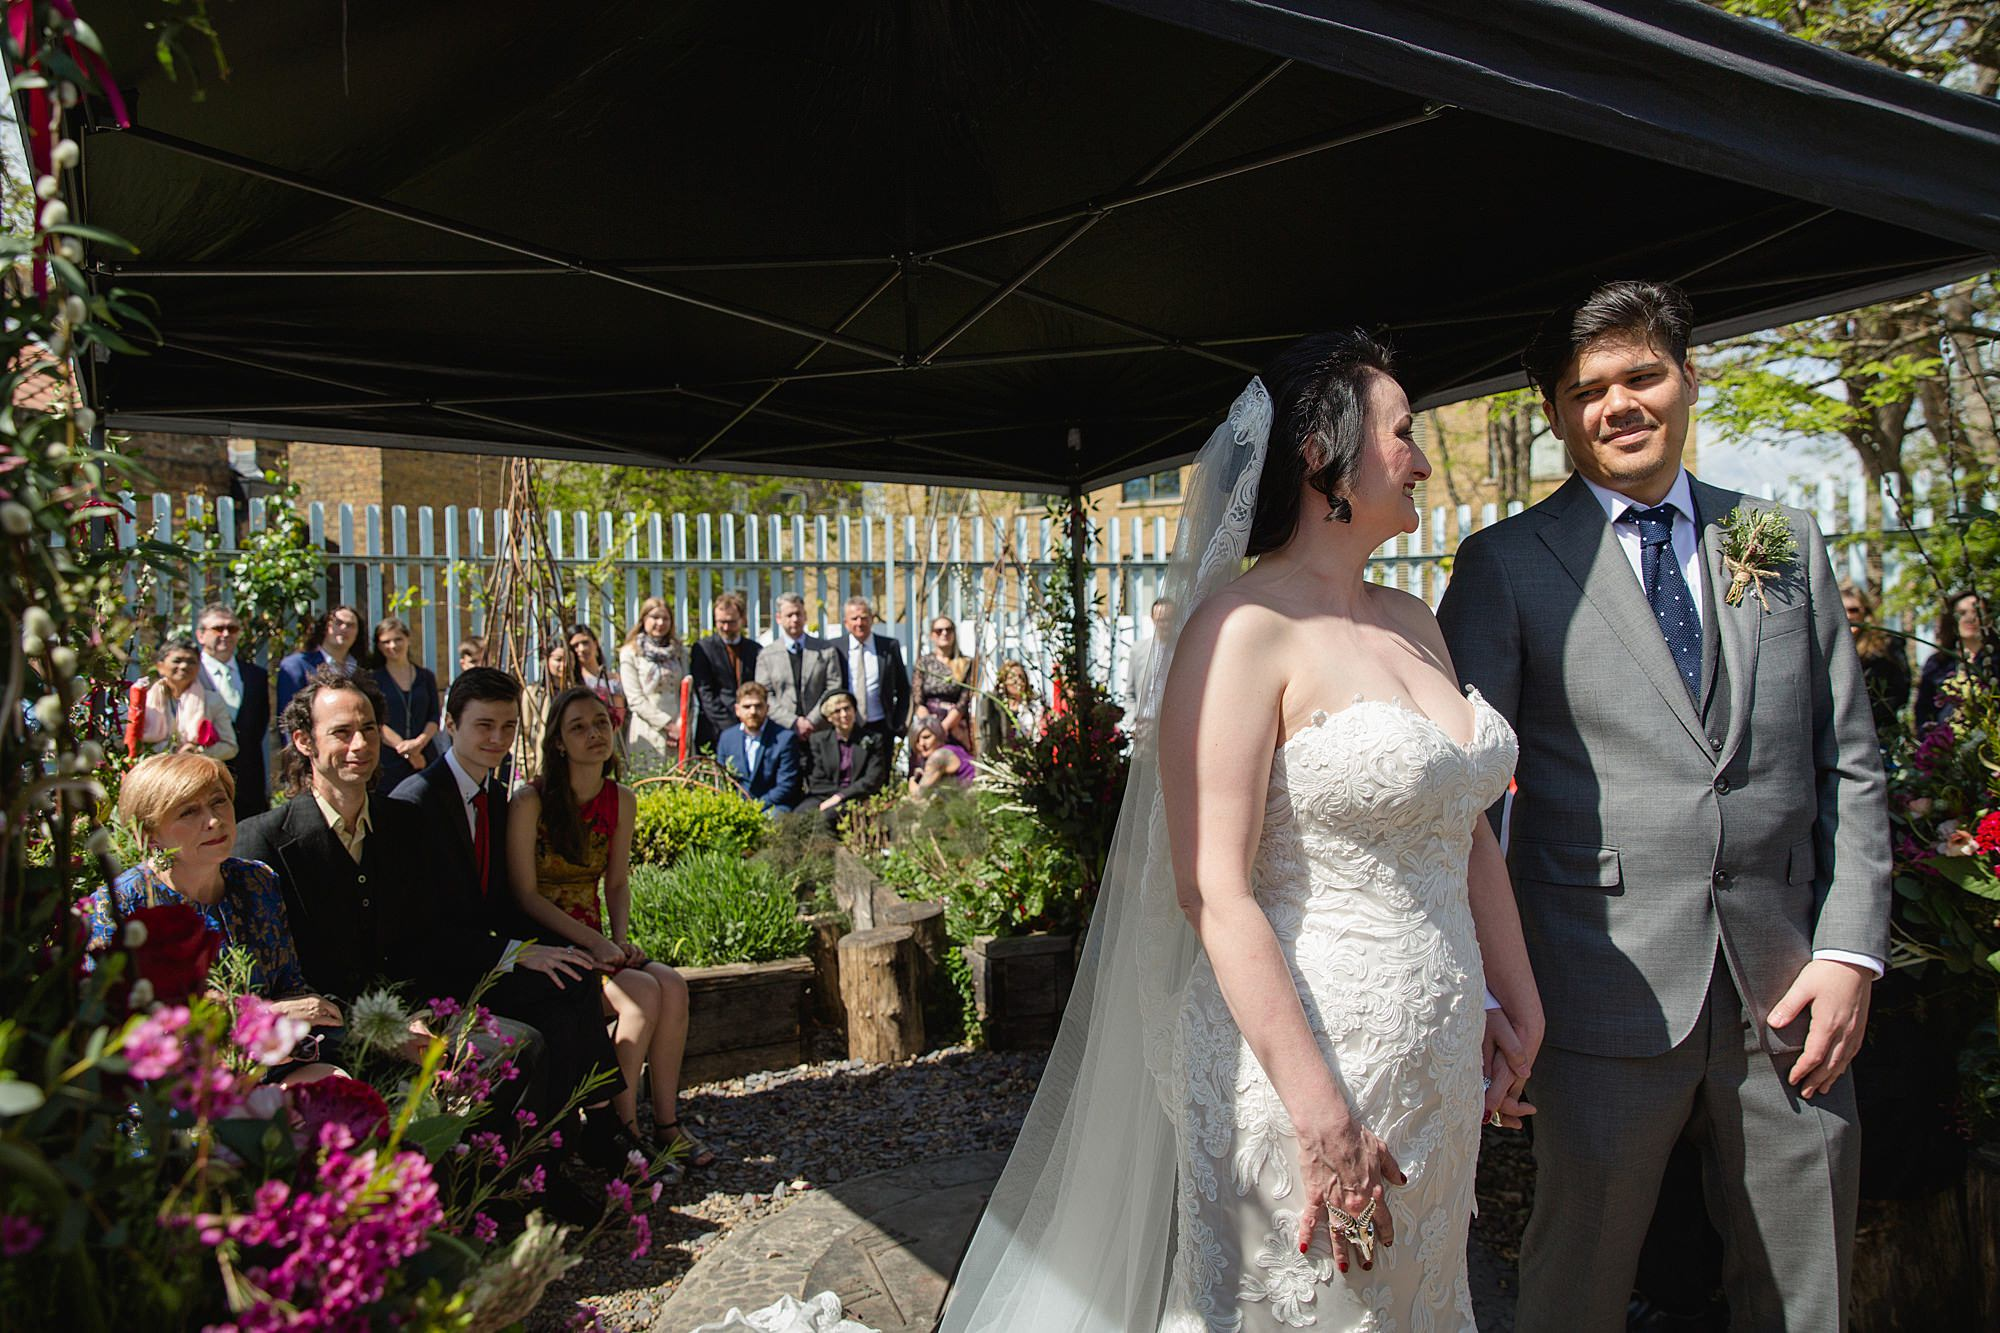 Brunel museum wedding bride and groom smile during wedding ceremony